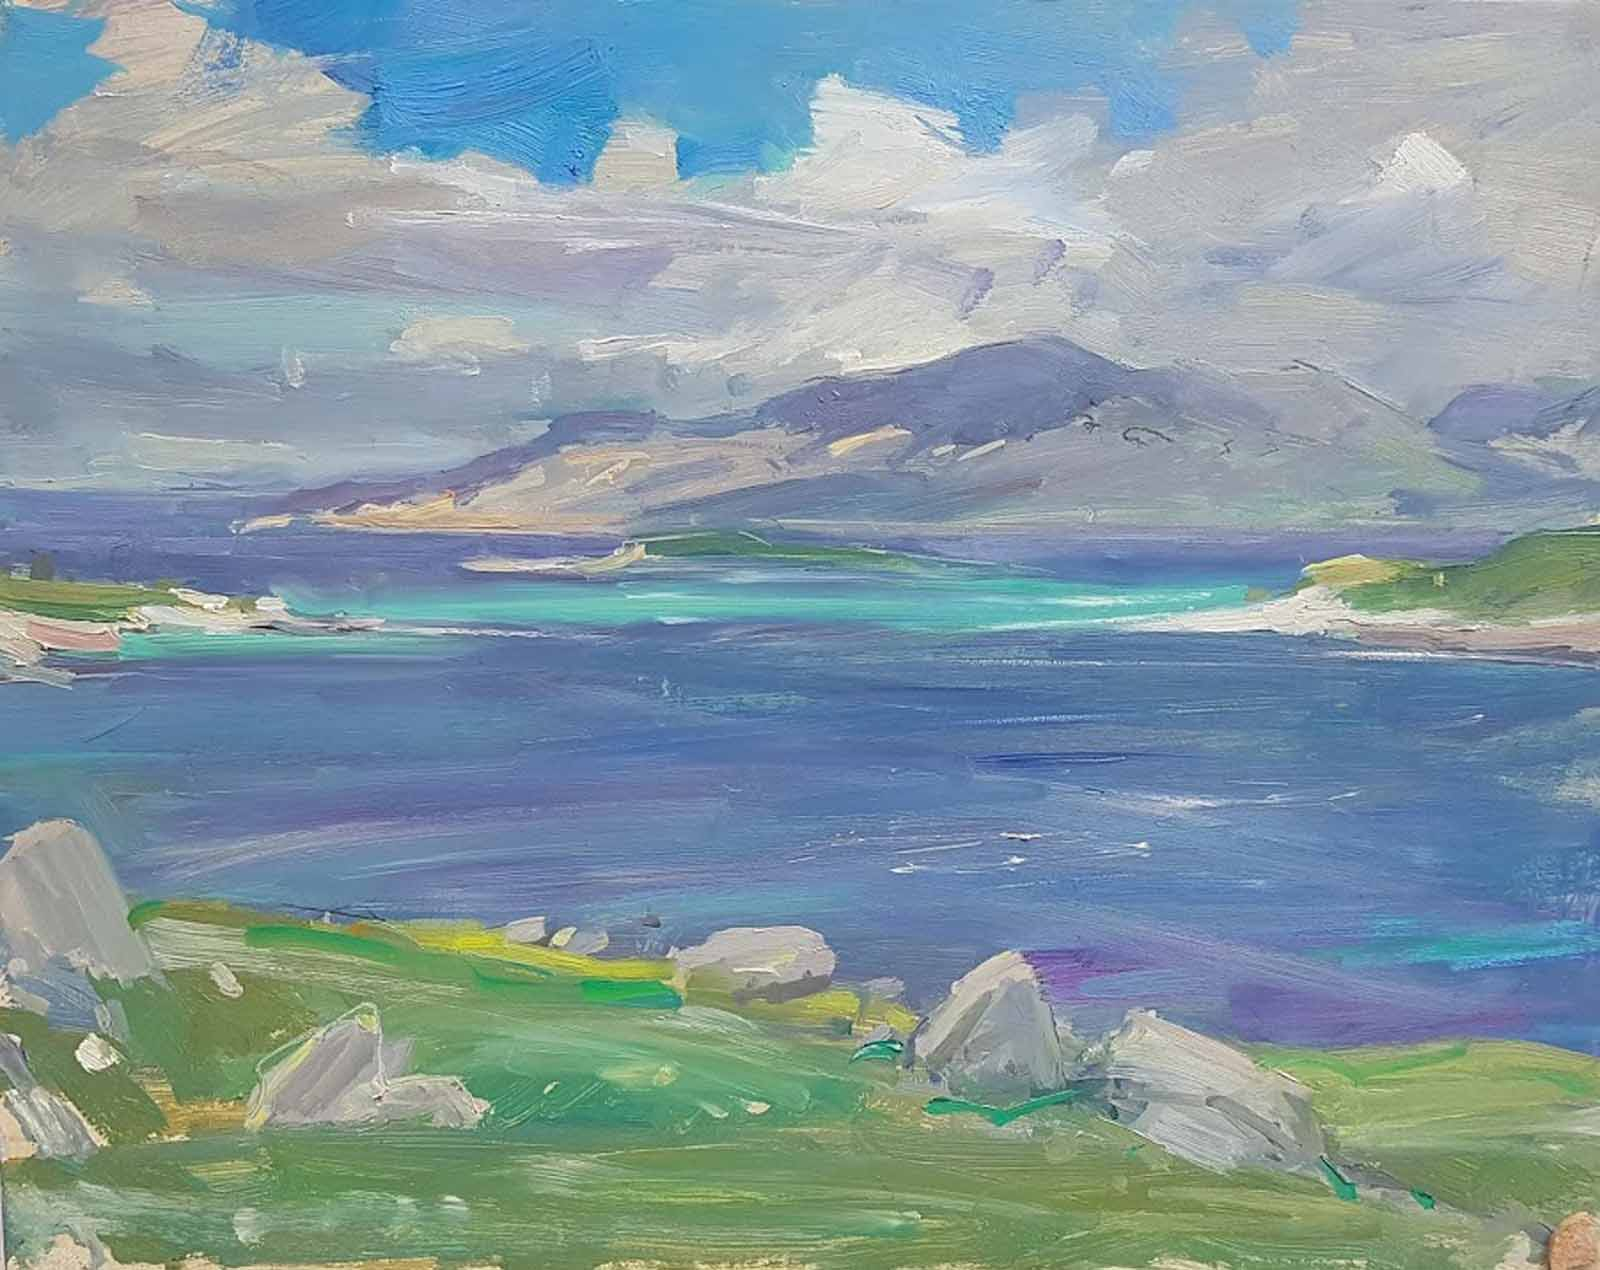 Hushinish, Harris